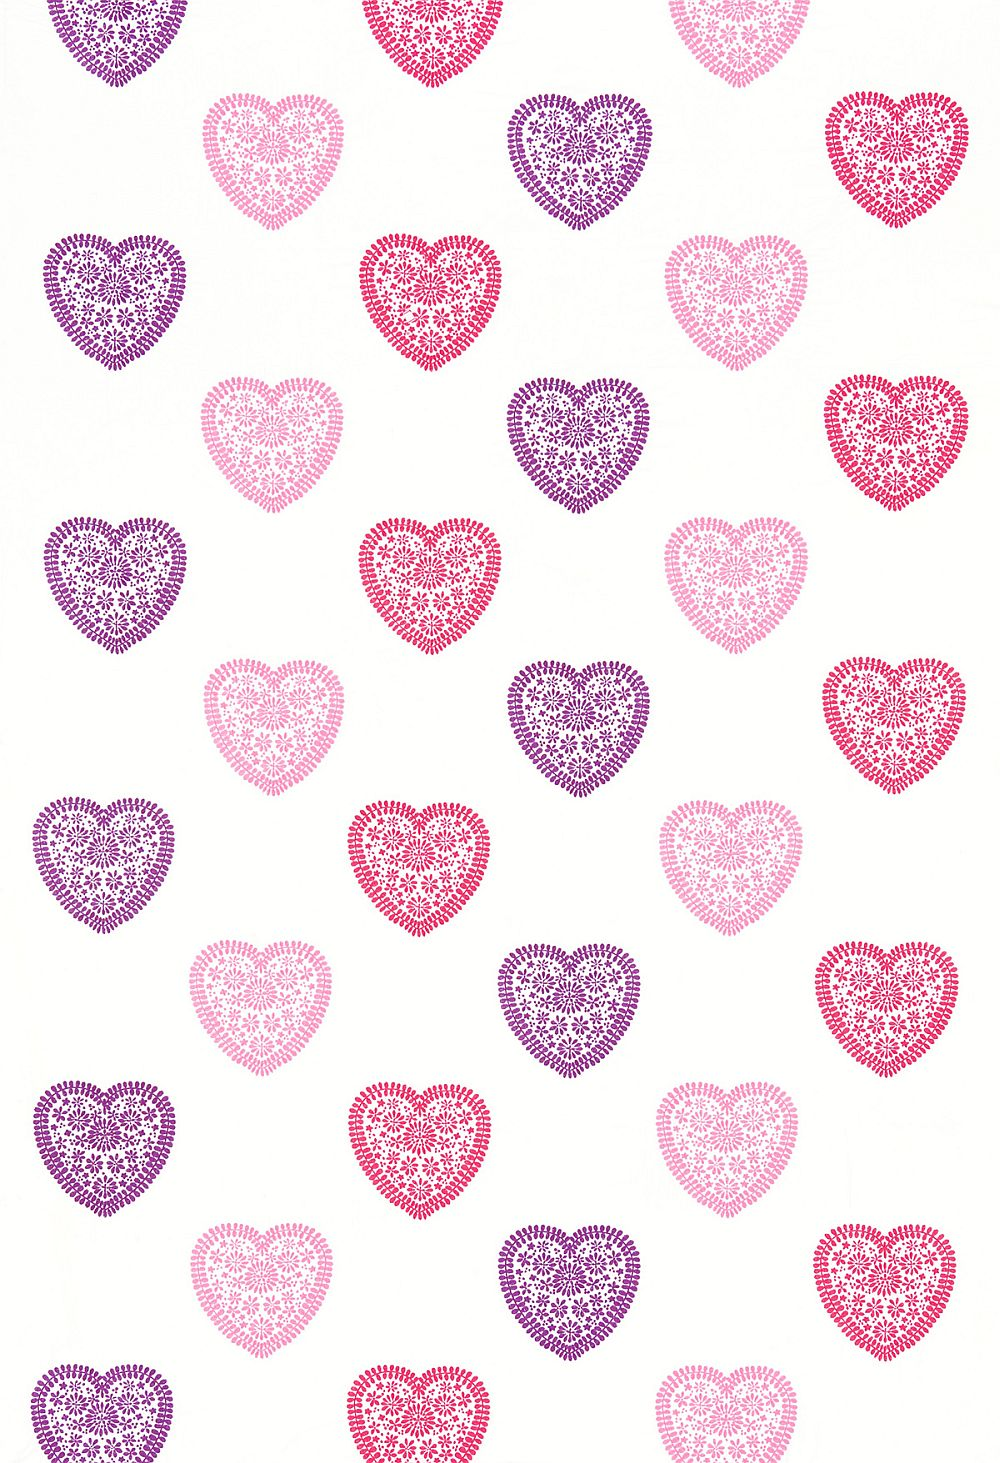 Harlequin Sweet Hearts Pink / Purple Fabric - Product code: 130755